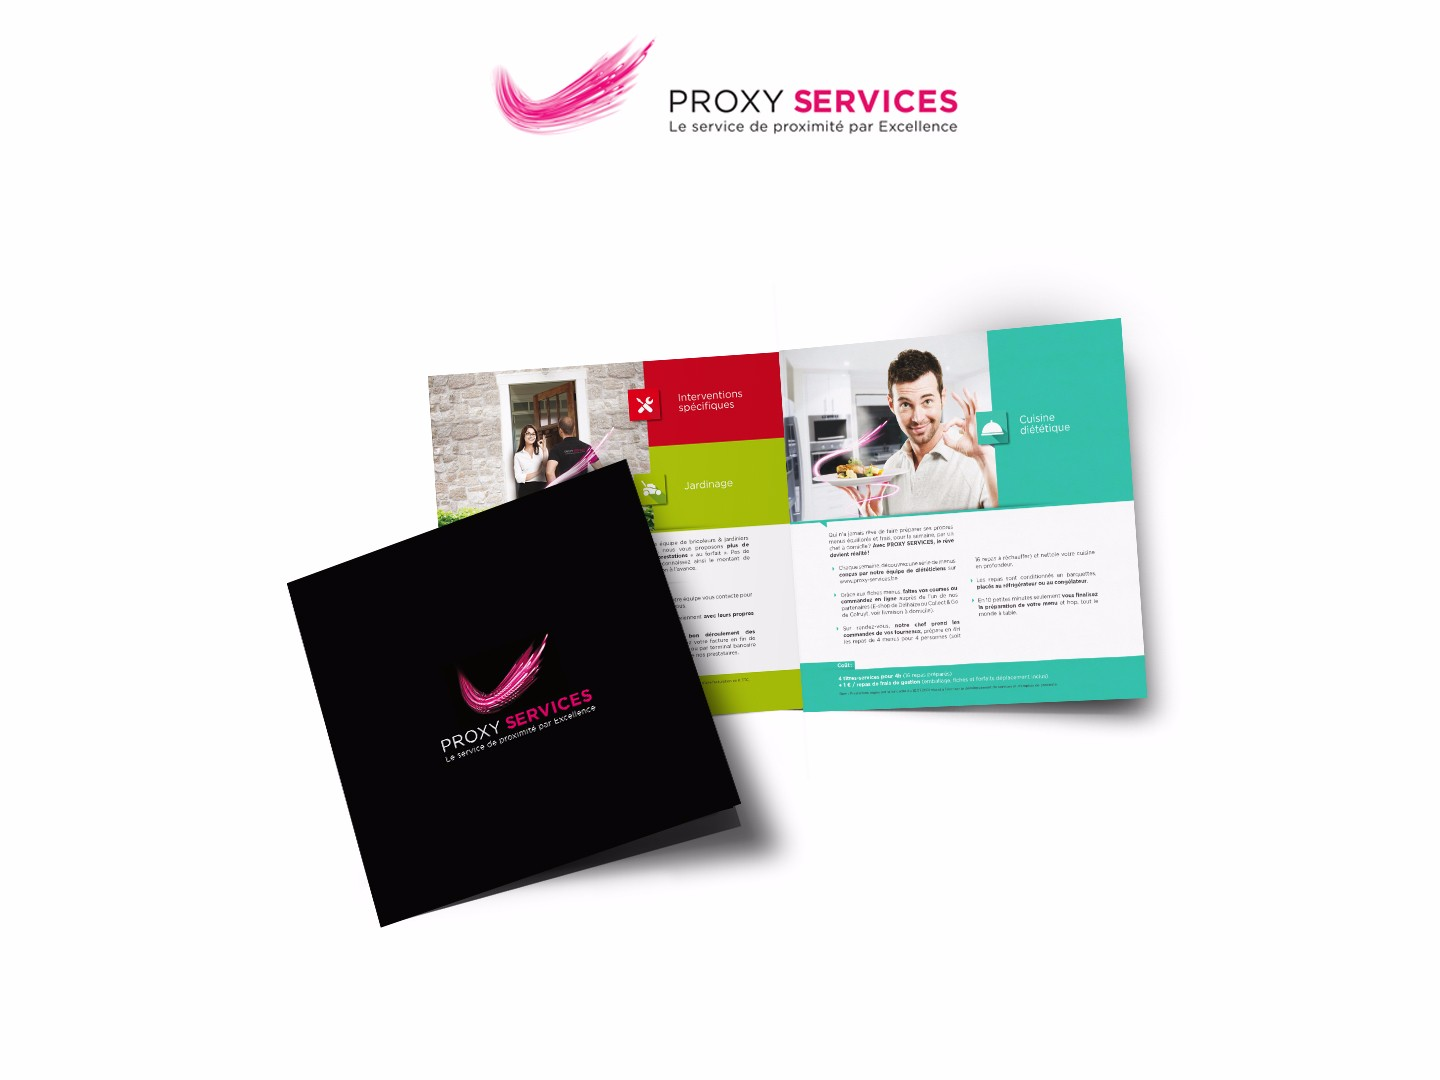 Lusis_ProxyService7_Site